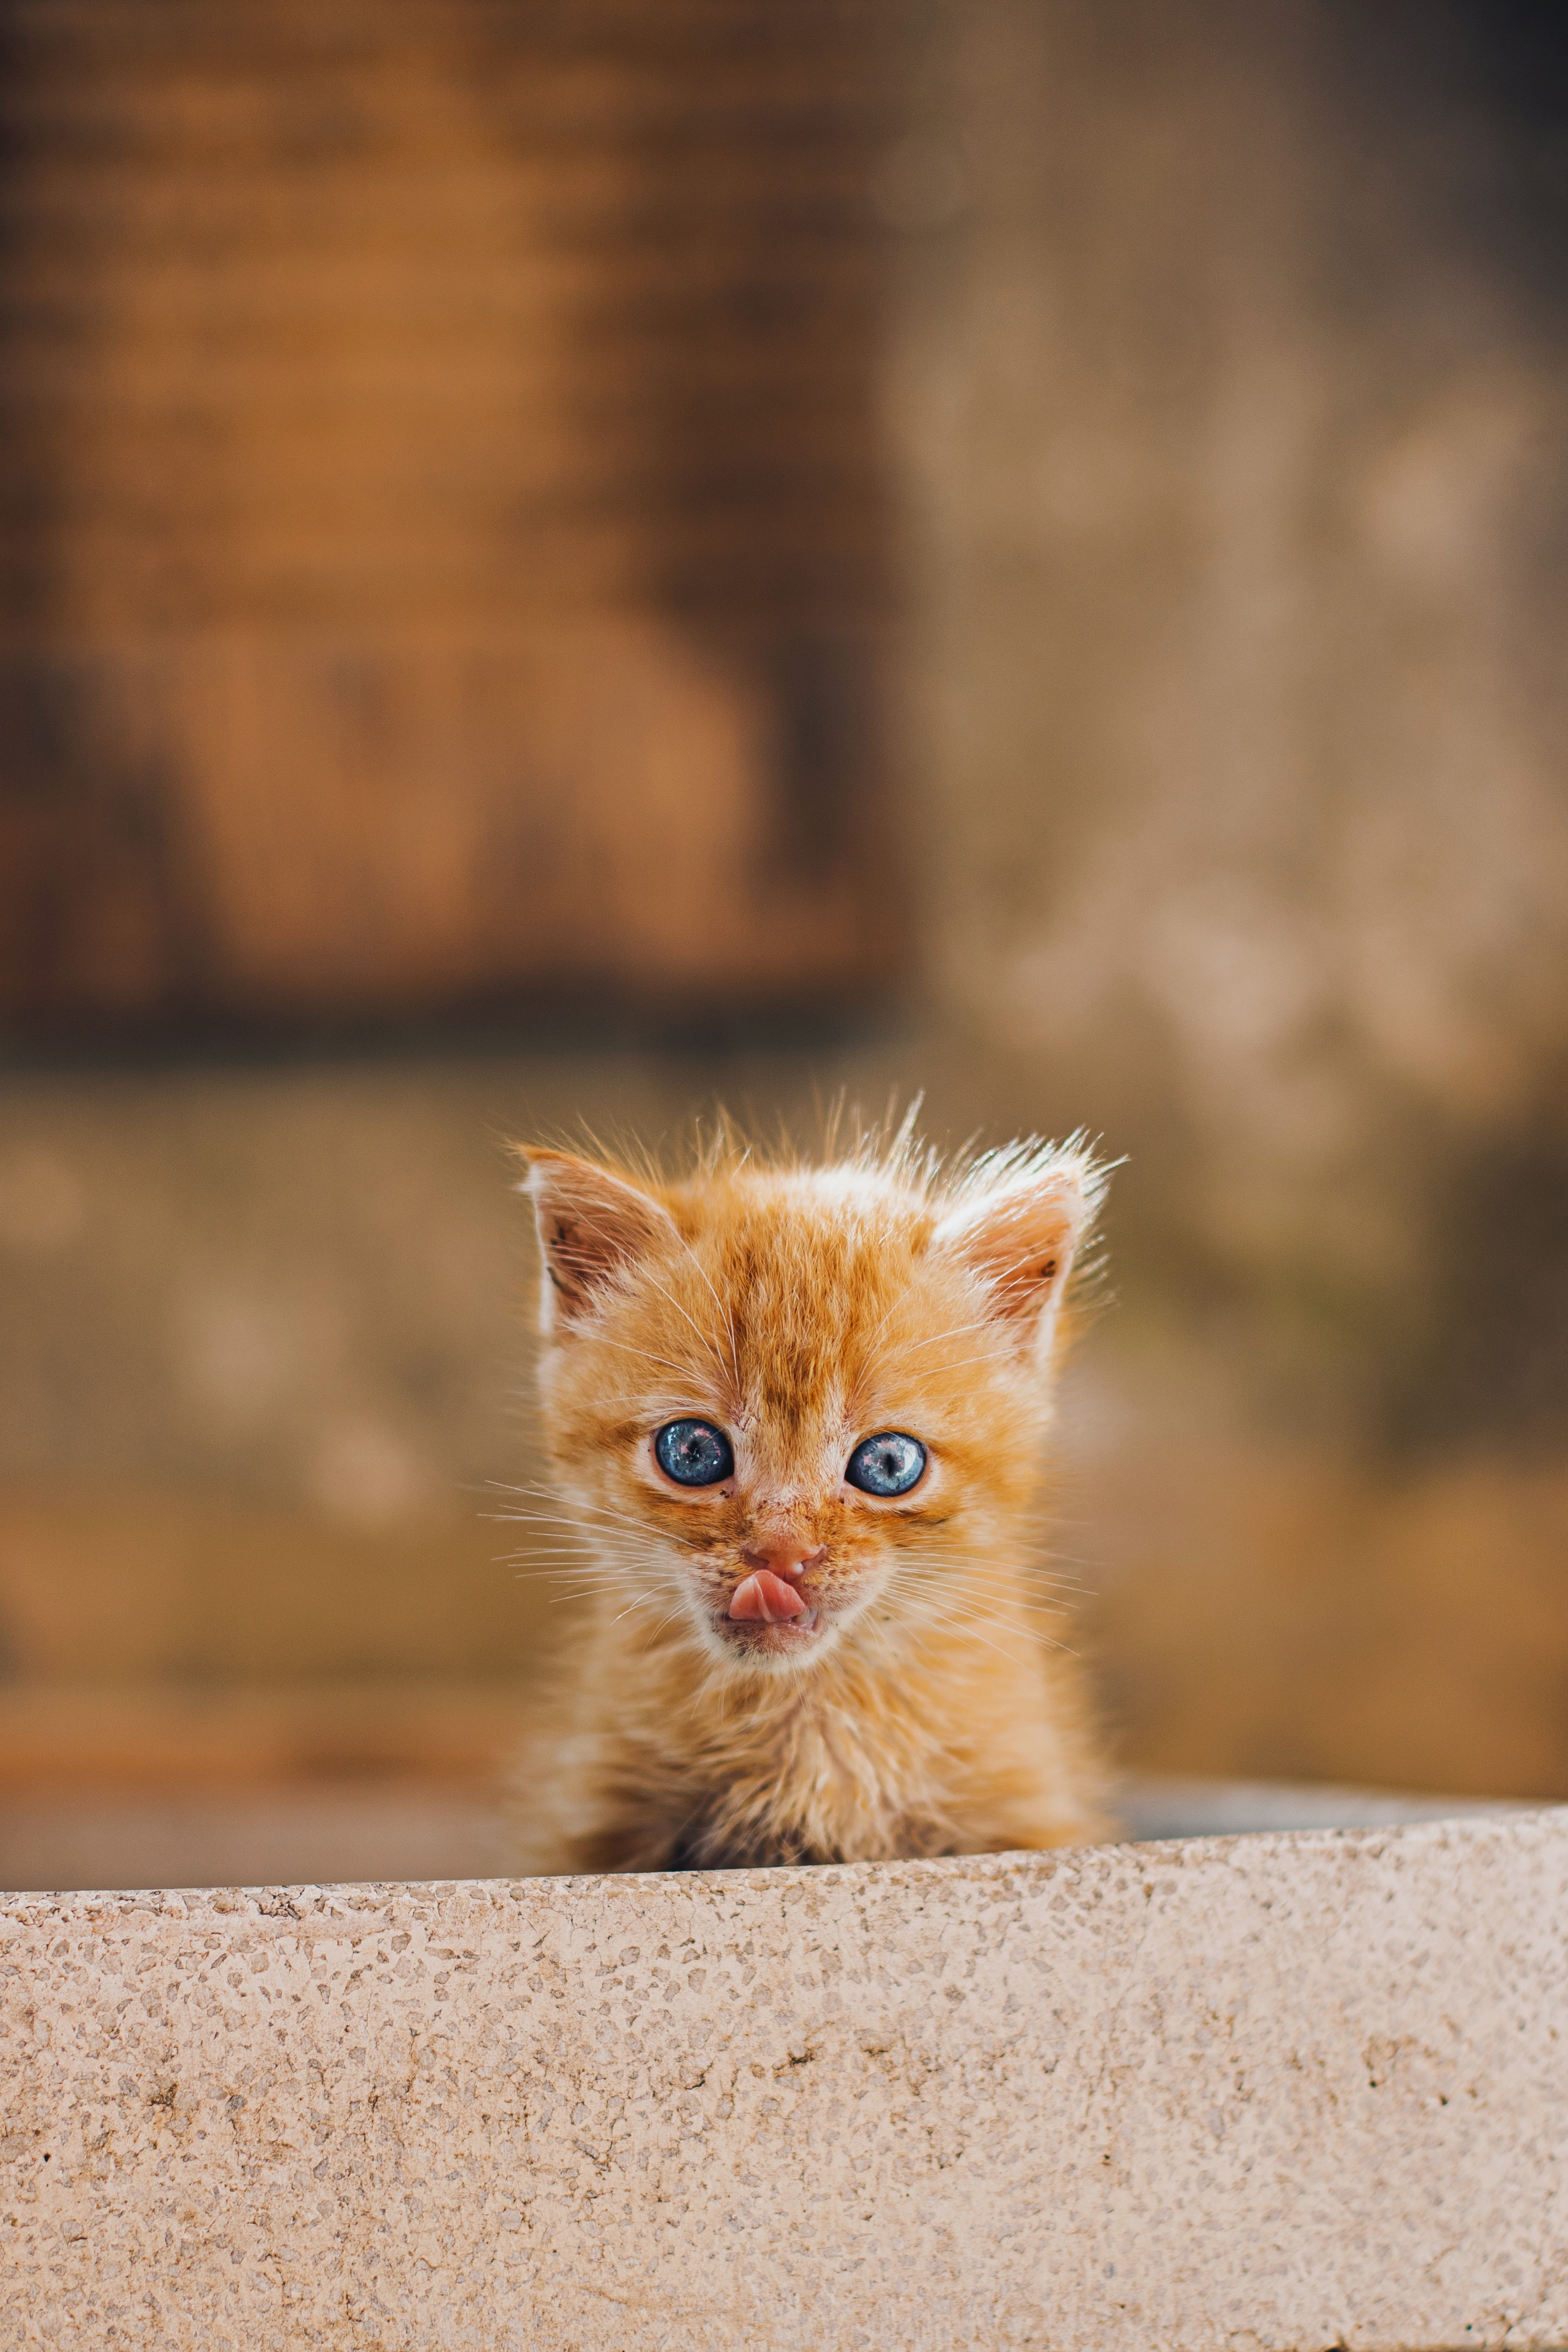 99907 download wallpaper Animals, Kitty, Kitten, Protruding Tongue, Tongue Stuck Out, Redhead, Nice, Sweetheart screensavers and pictures for free